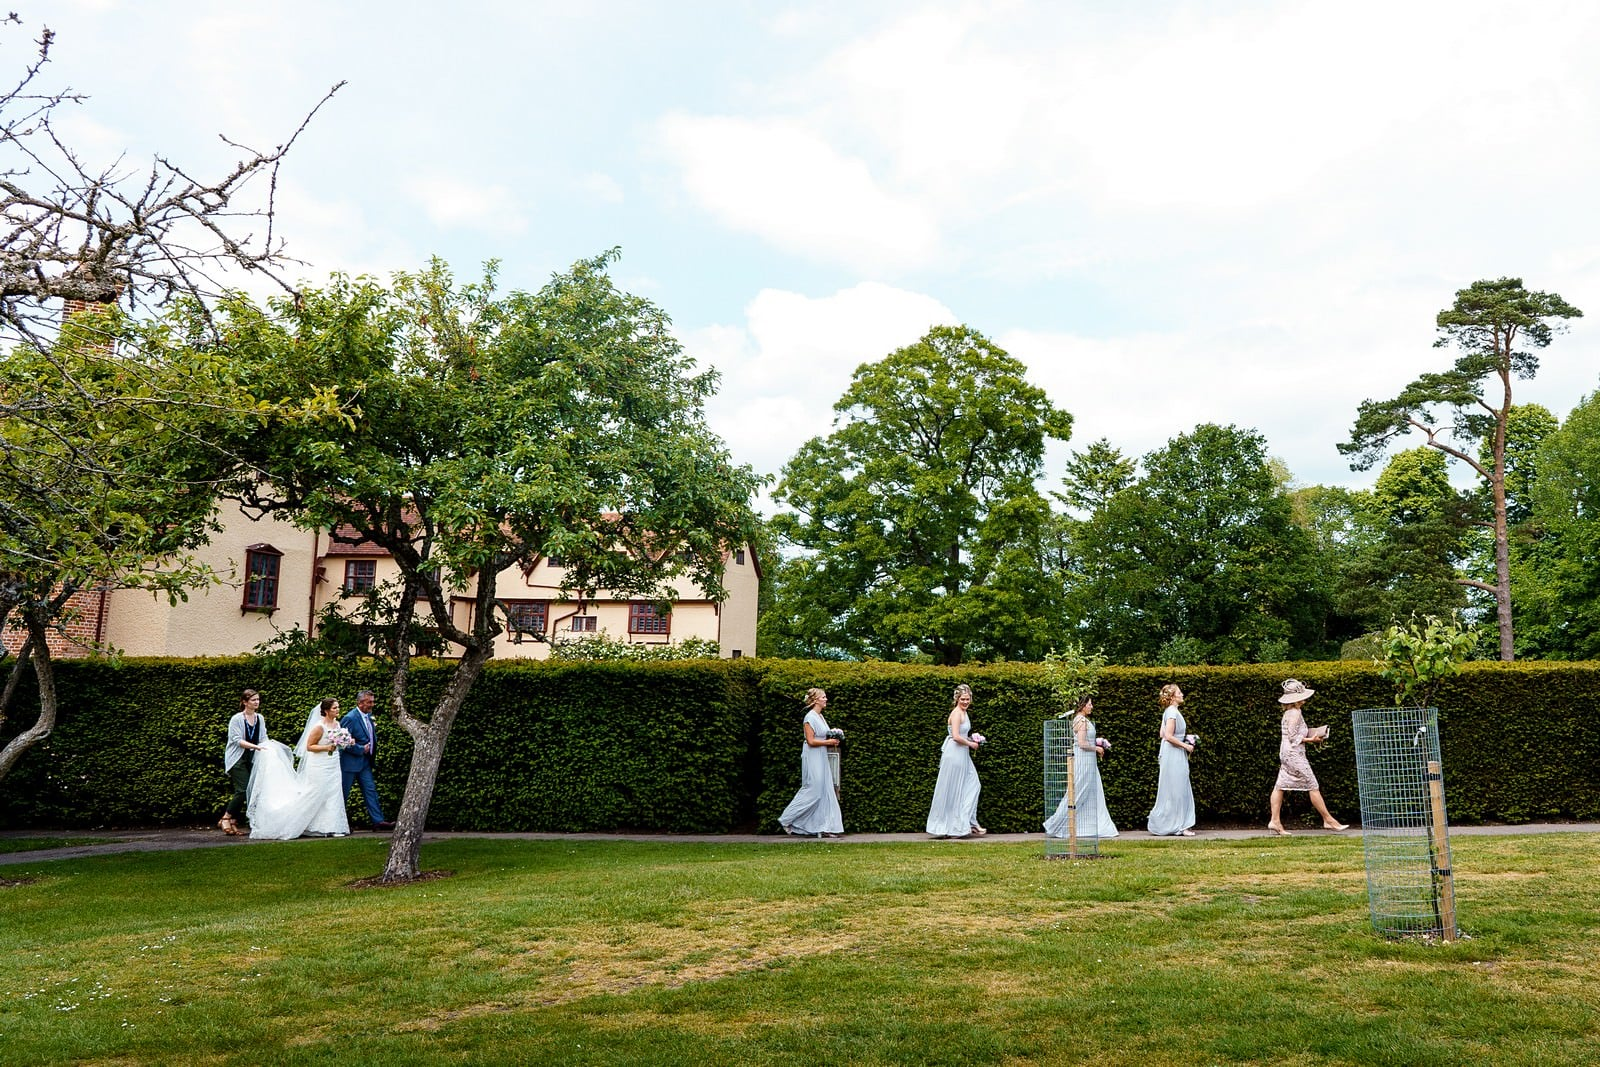 https://paulkeppel.co.uk/beautiful-wedding-at-ufton-court/